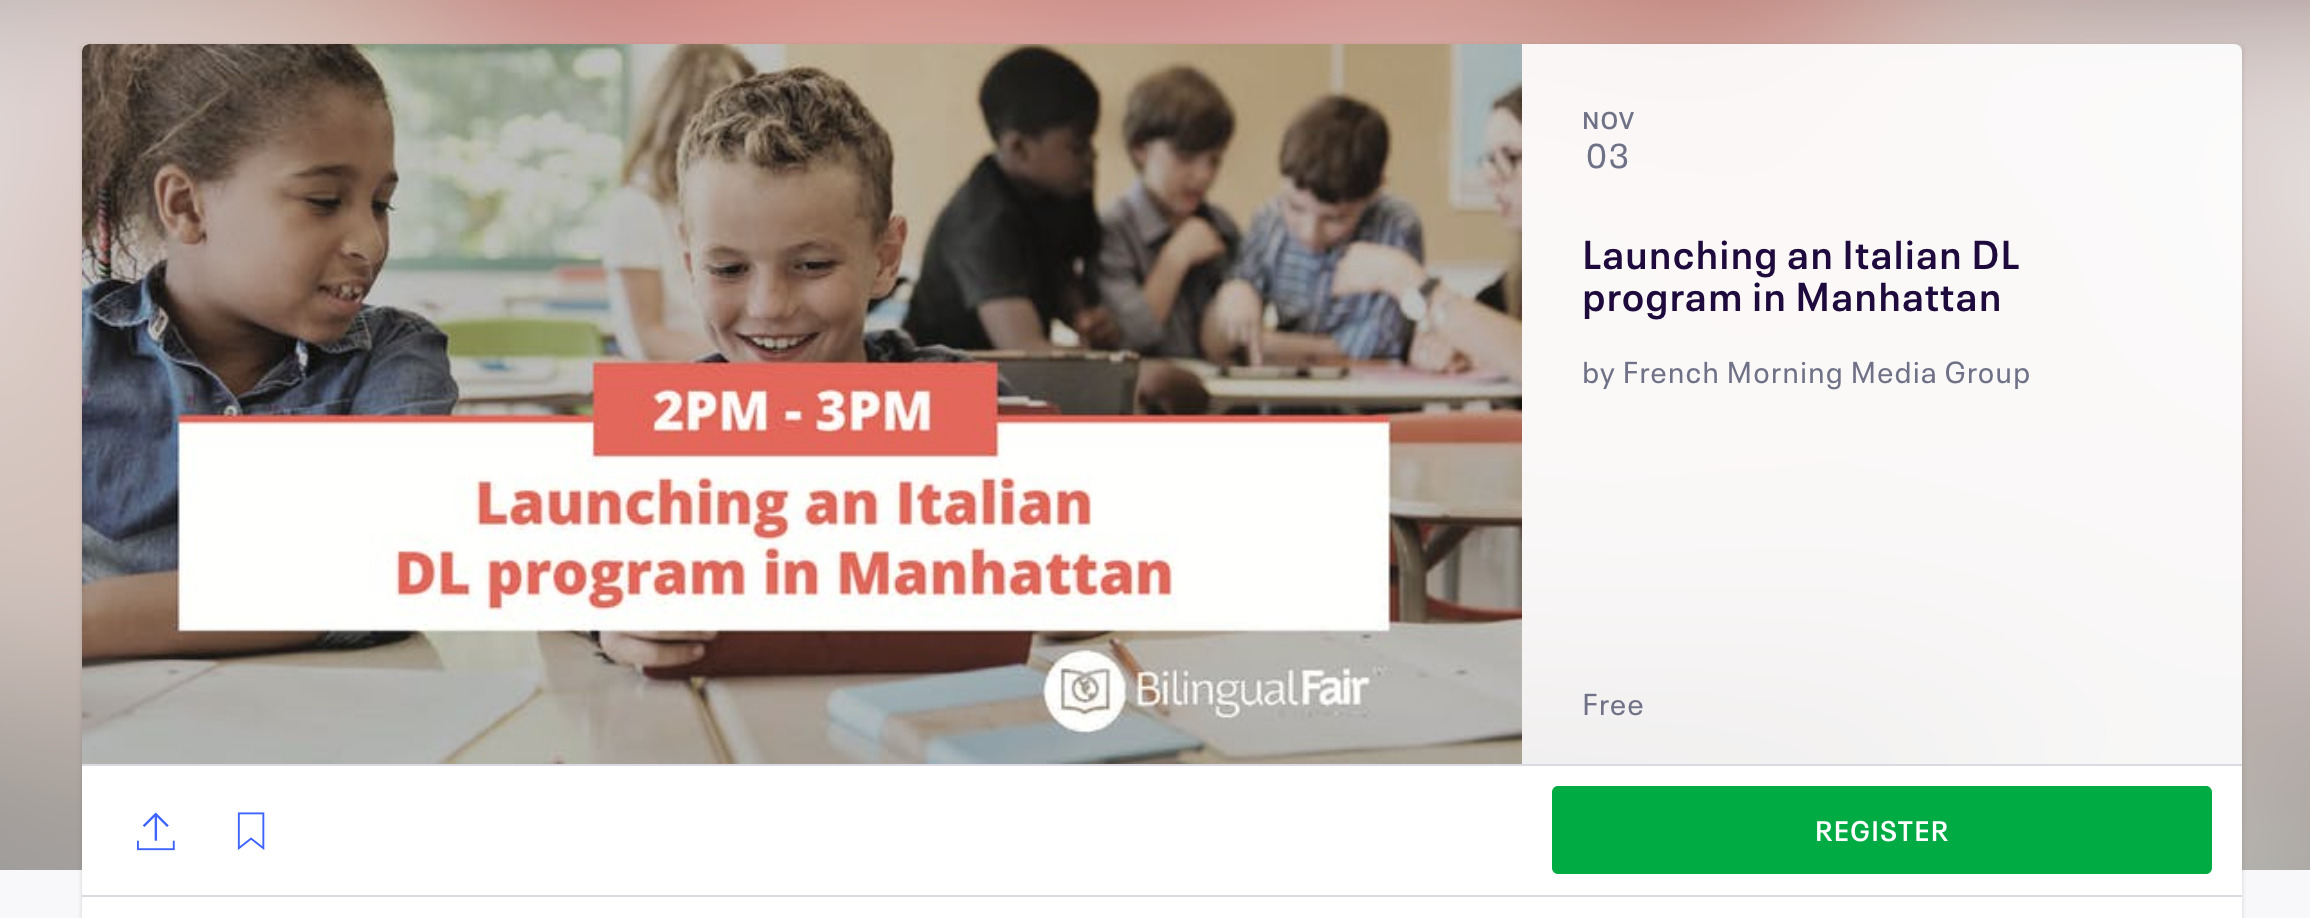 Launching an Italian DL program in Manhattan.jpg